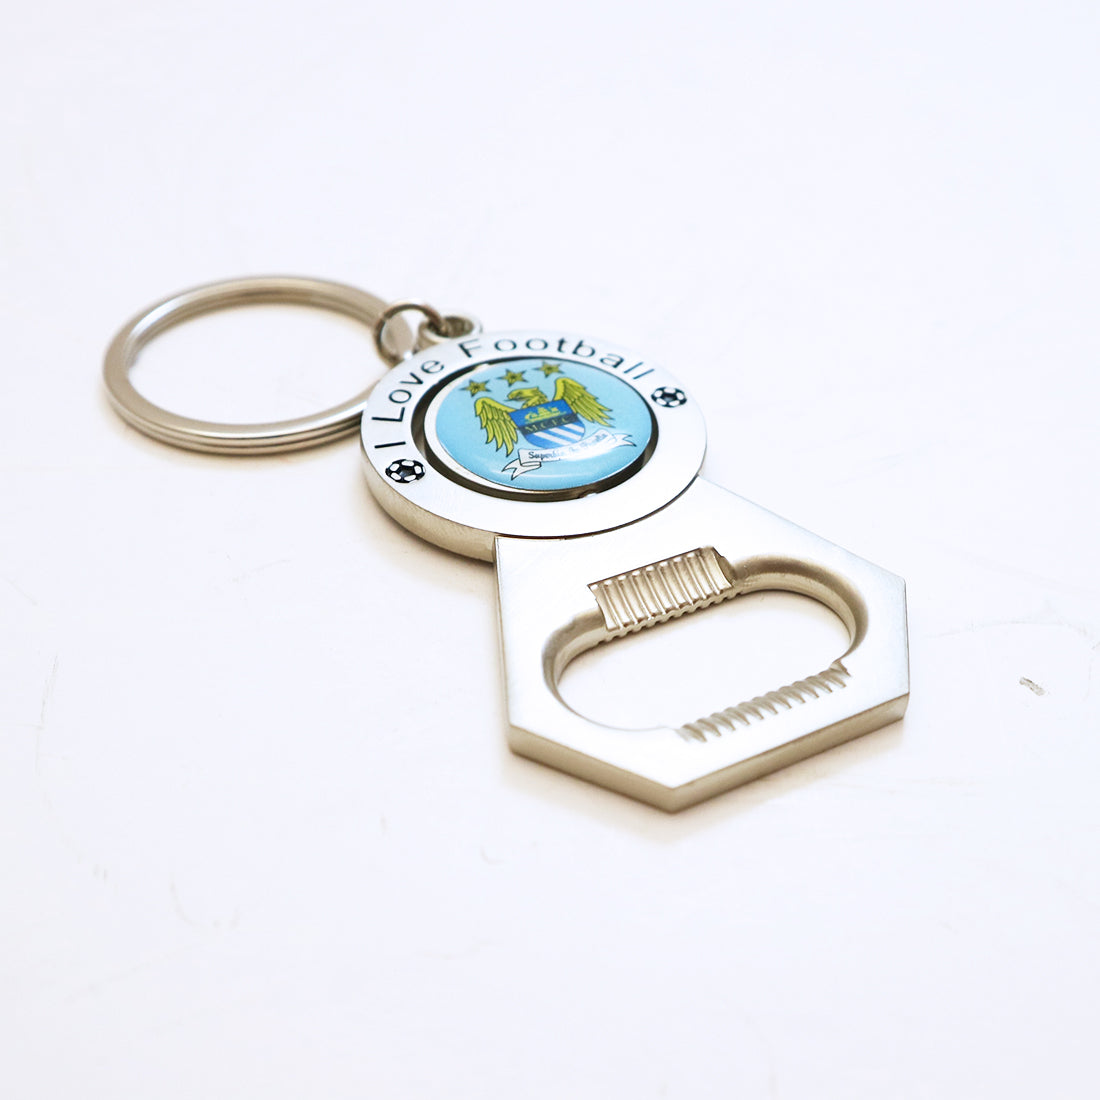 Football Club Key Opener - Bayern, Manchester City, Juventus, and Chelsea